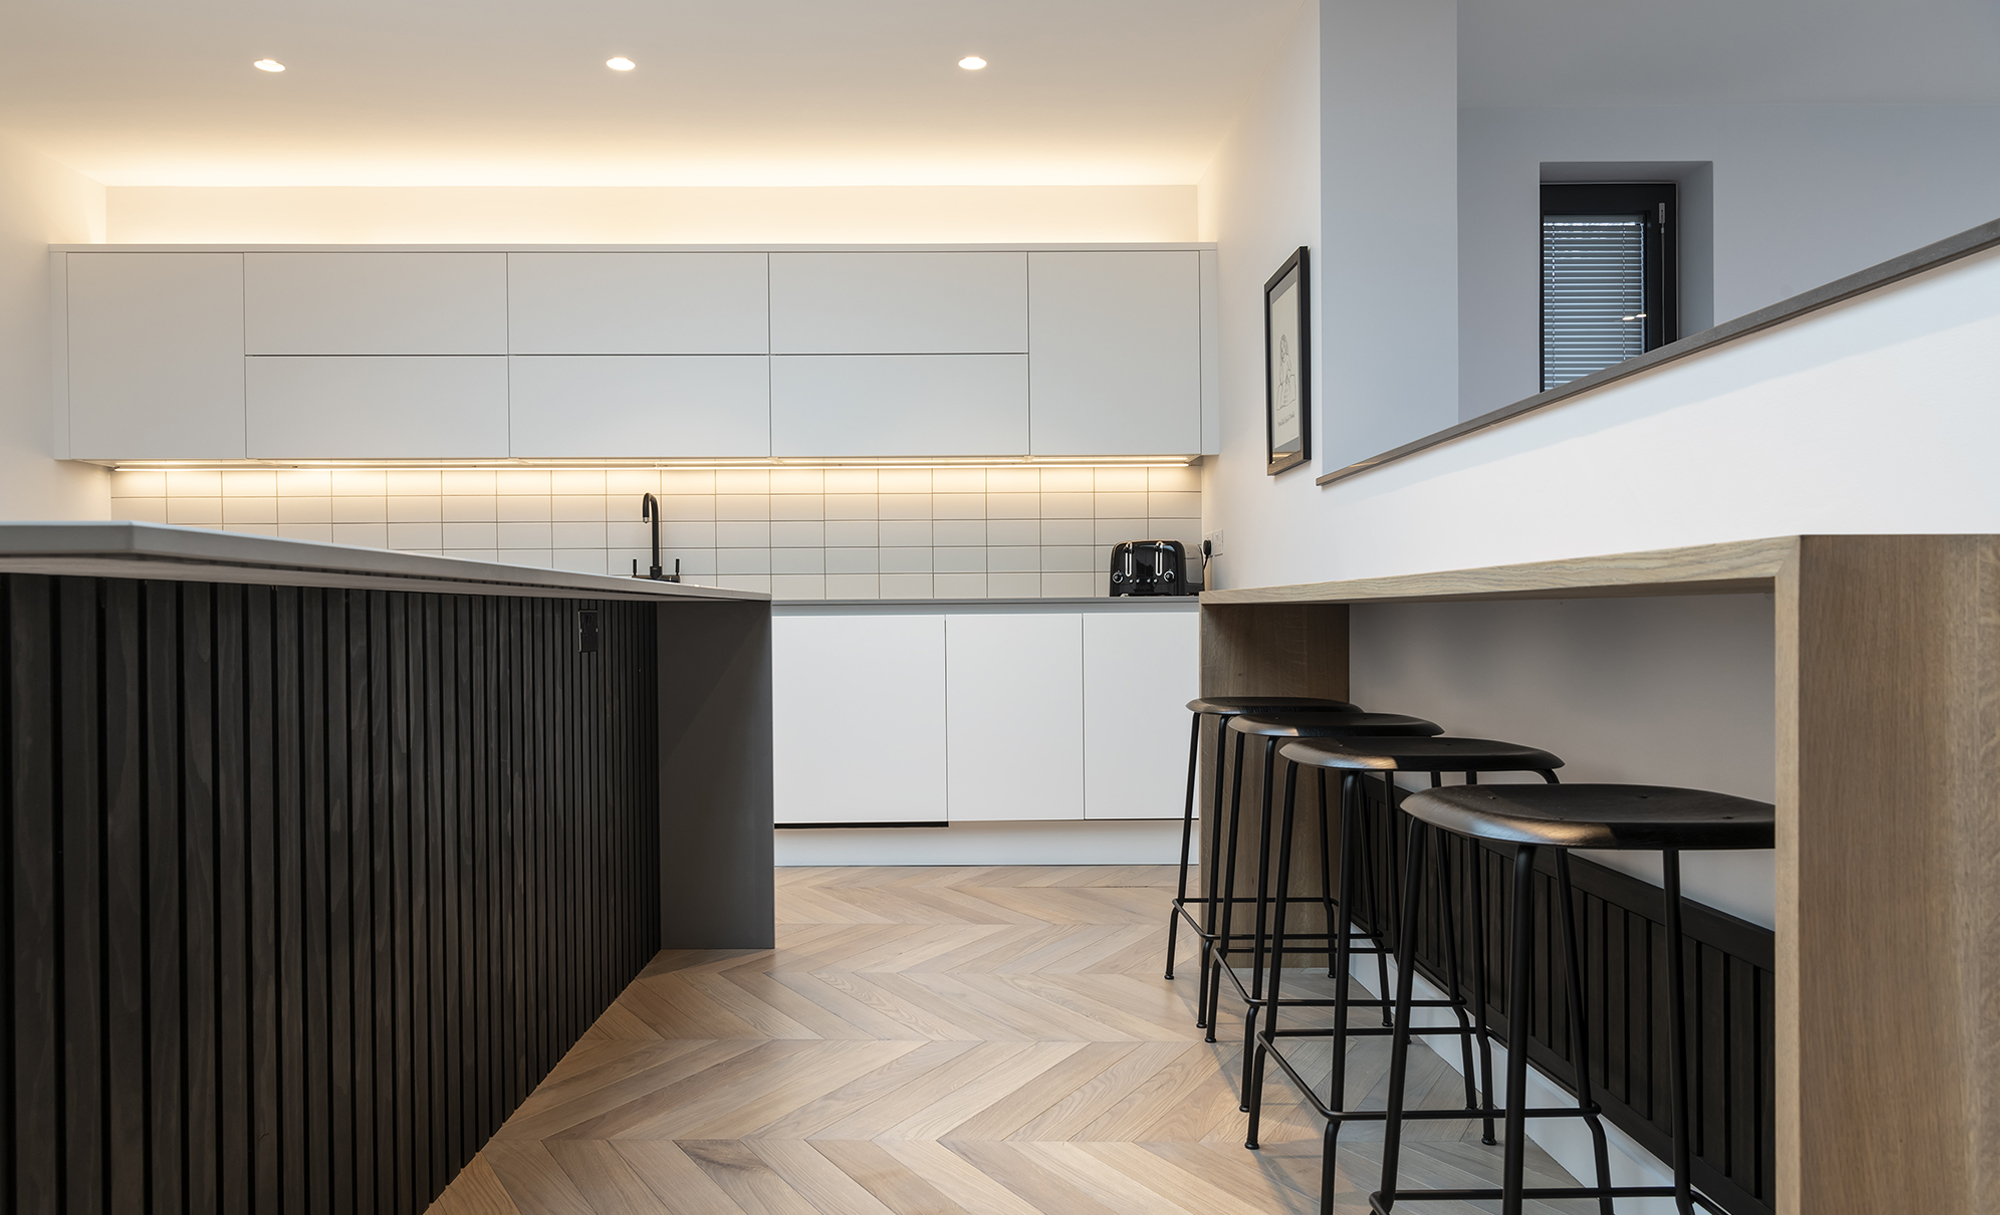 Portishead Zola Matte Almost Black & White Kitchen for a home in North Somerset